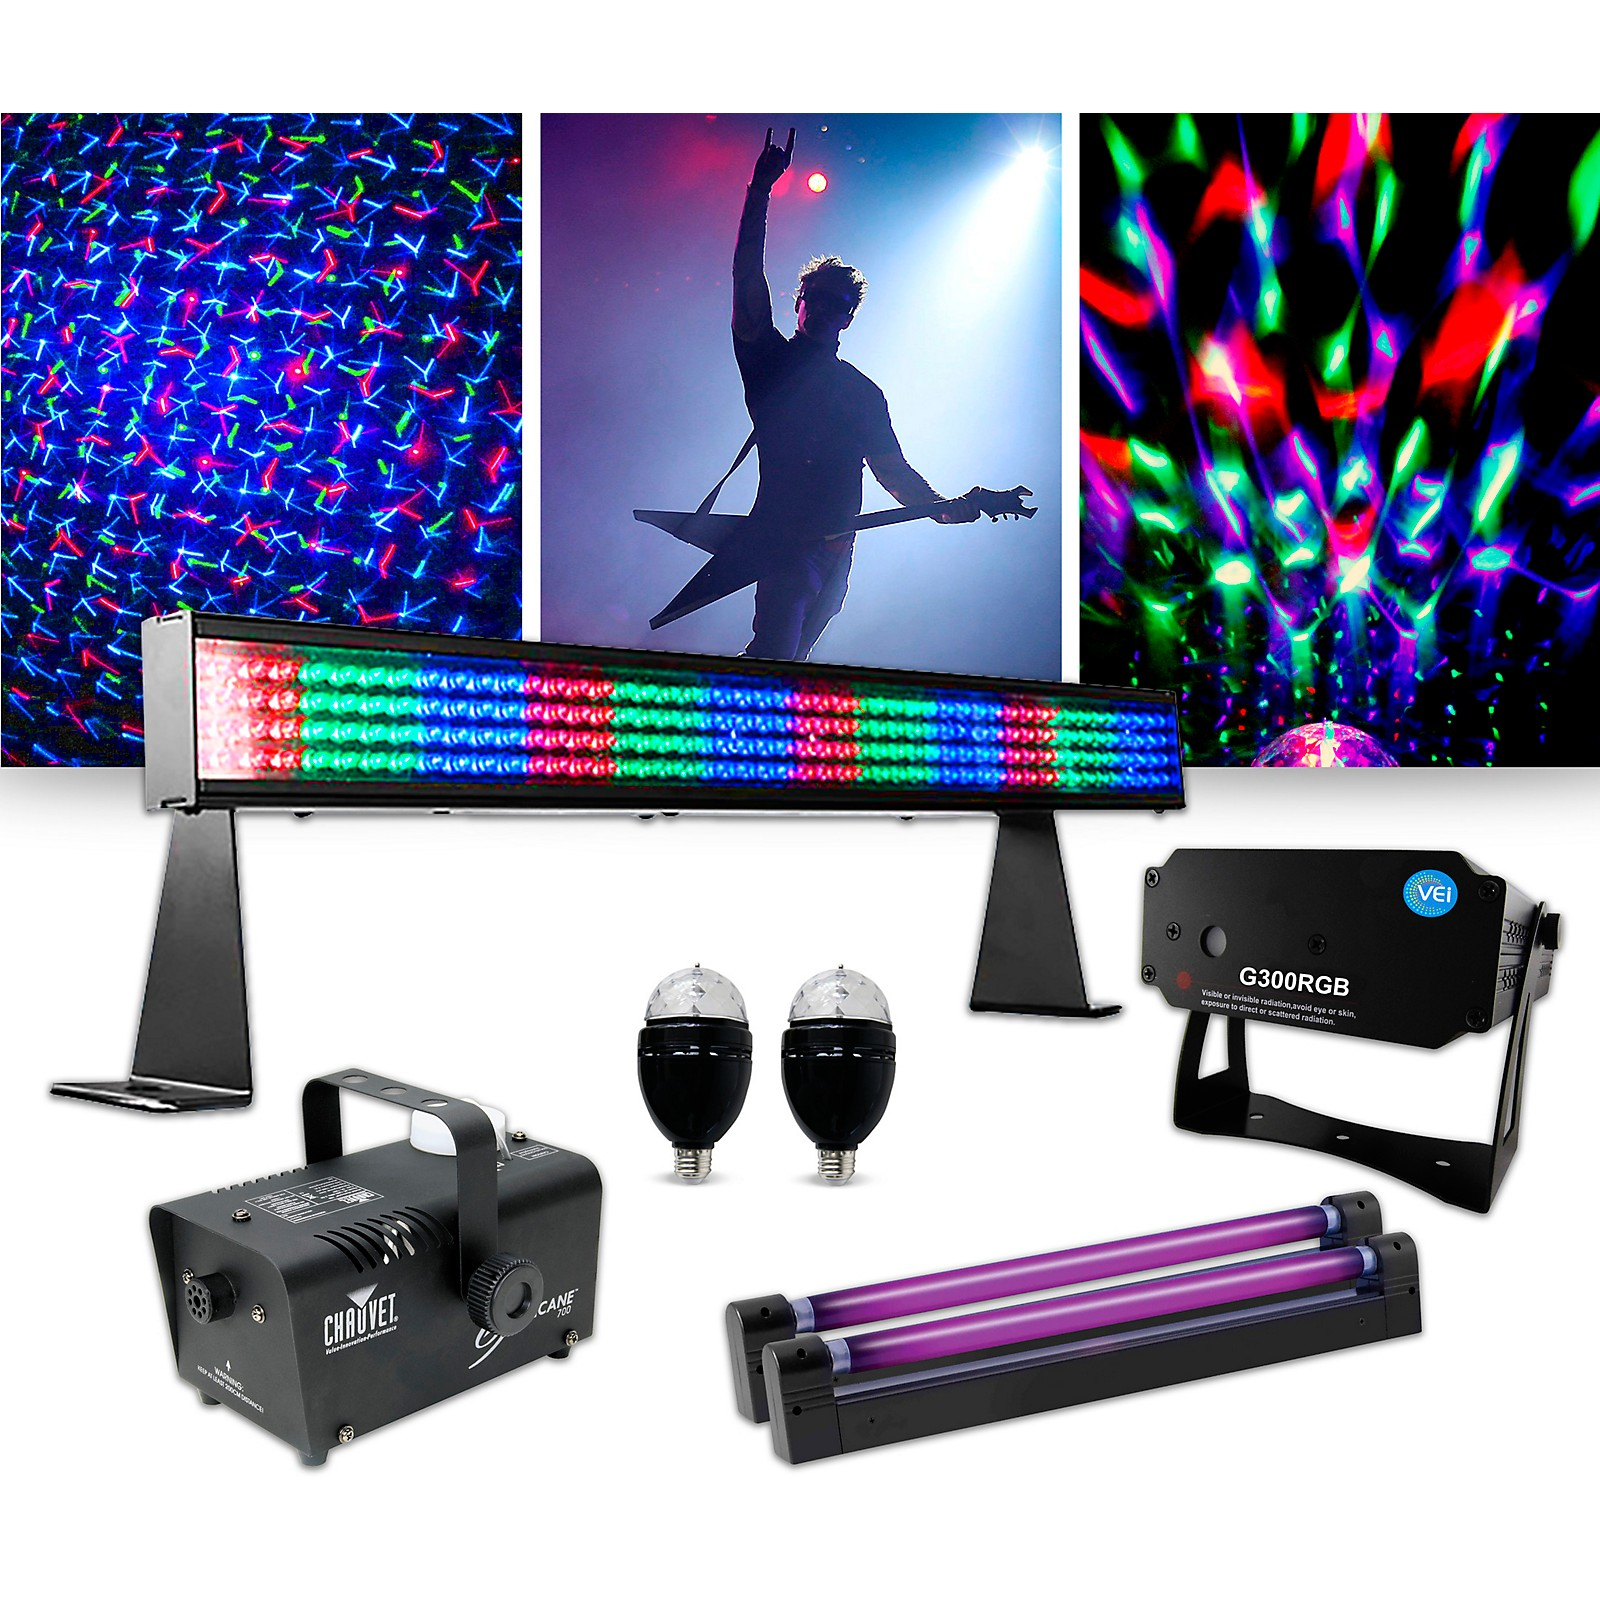 CHAUVET DJ Lighting effects package with COLORstrip MINI and VEI G300 RGB Laser